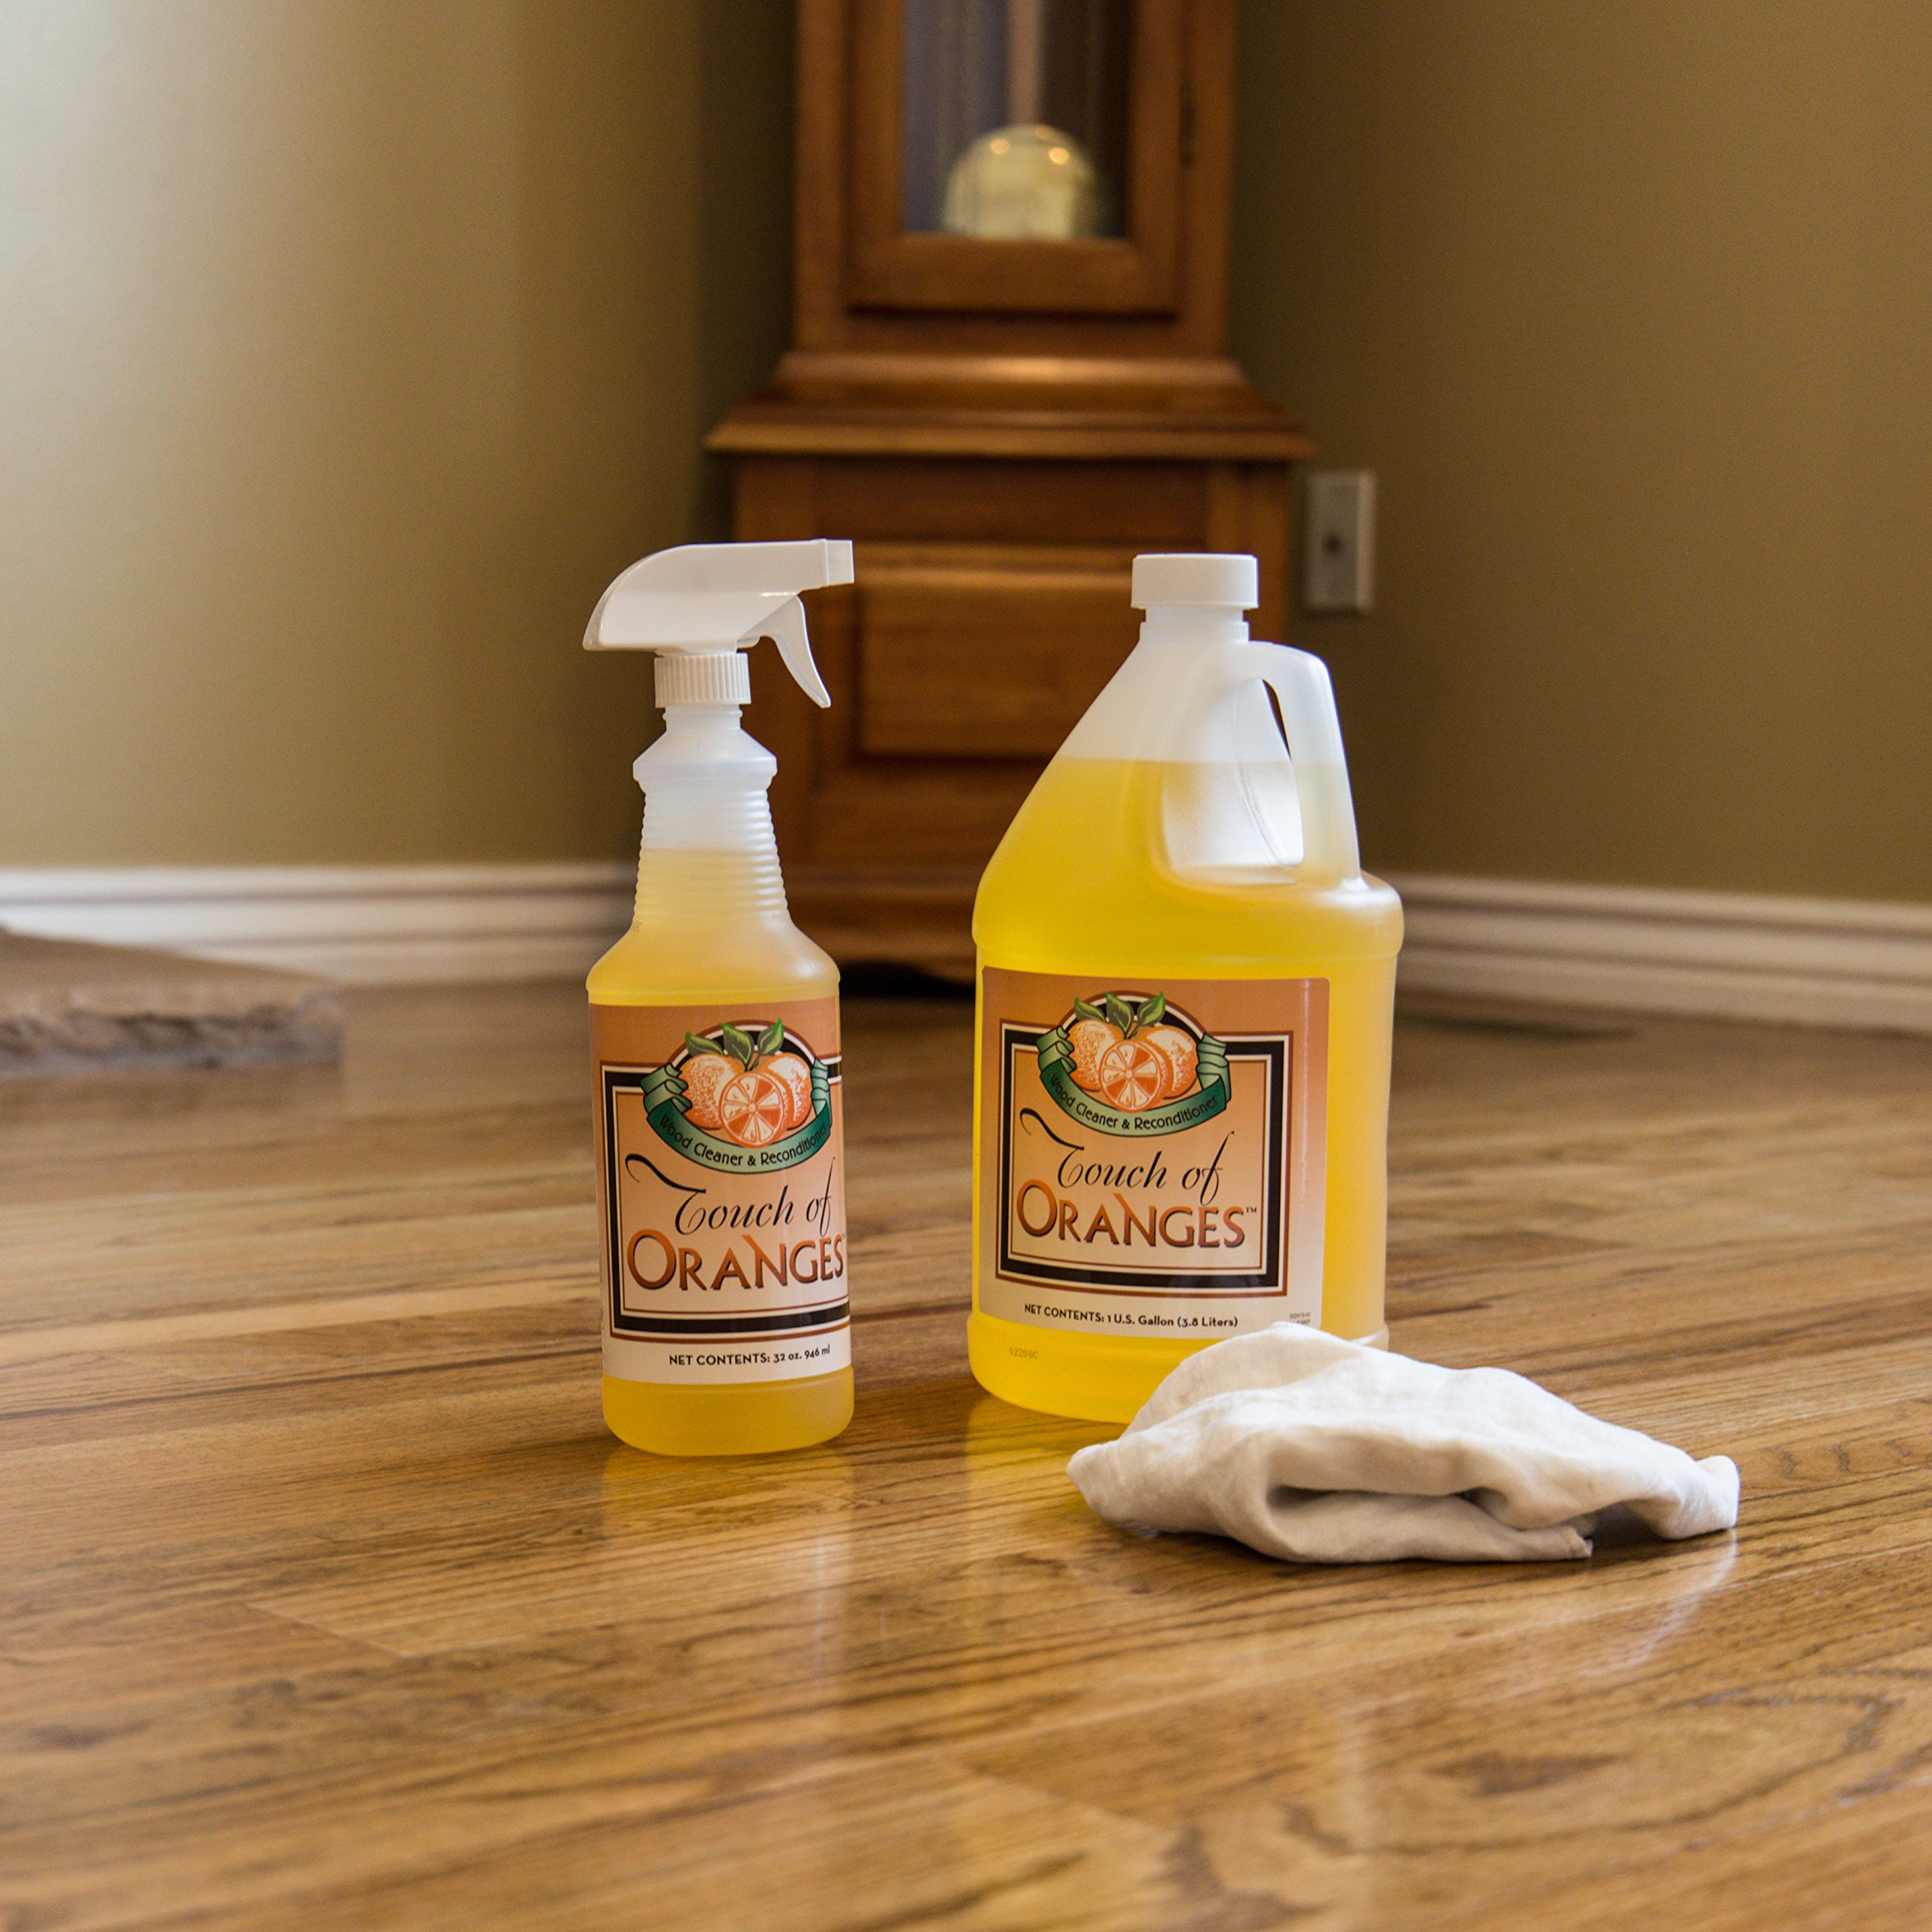 Wood Cleaner and Restorer for Hardwood Floor, Wood Furniture and Wood Cabinet Cleaner with Orange Oil (Gallon) by Touch Of Oranges (Image #7)